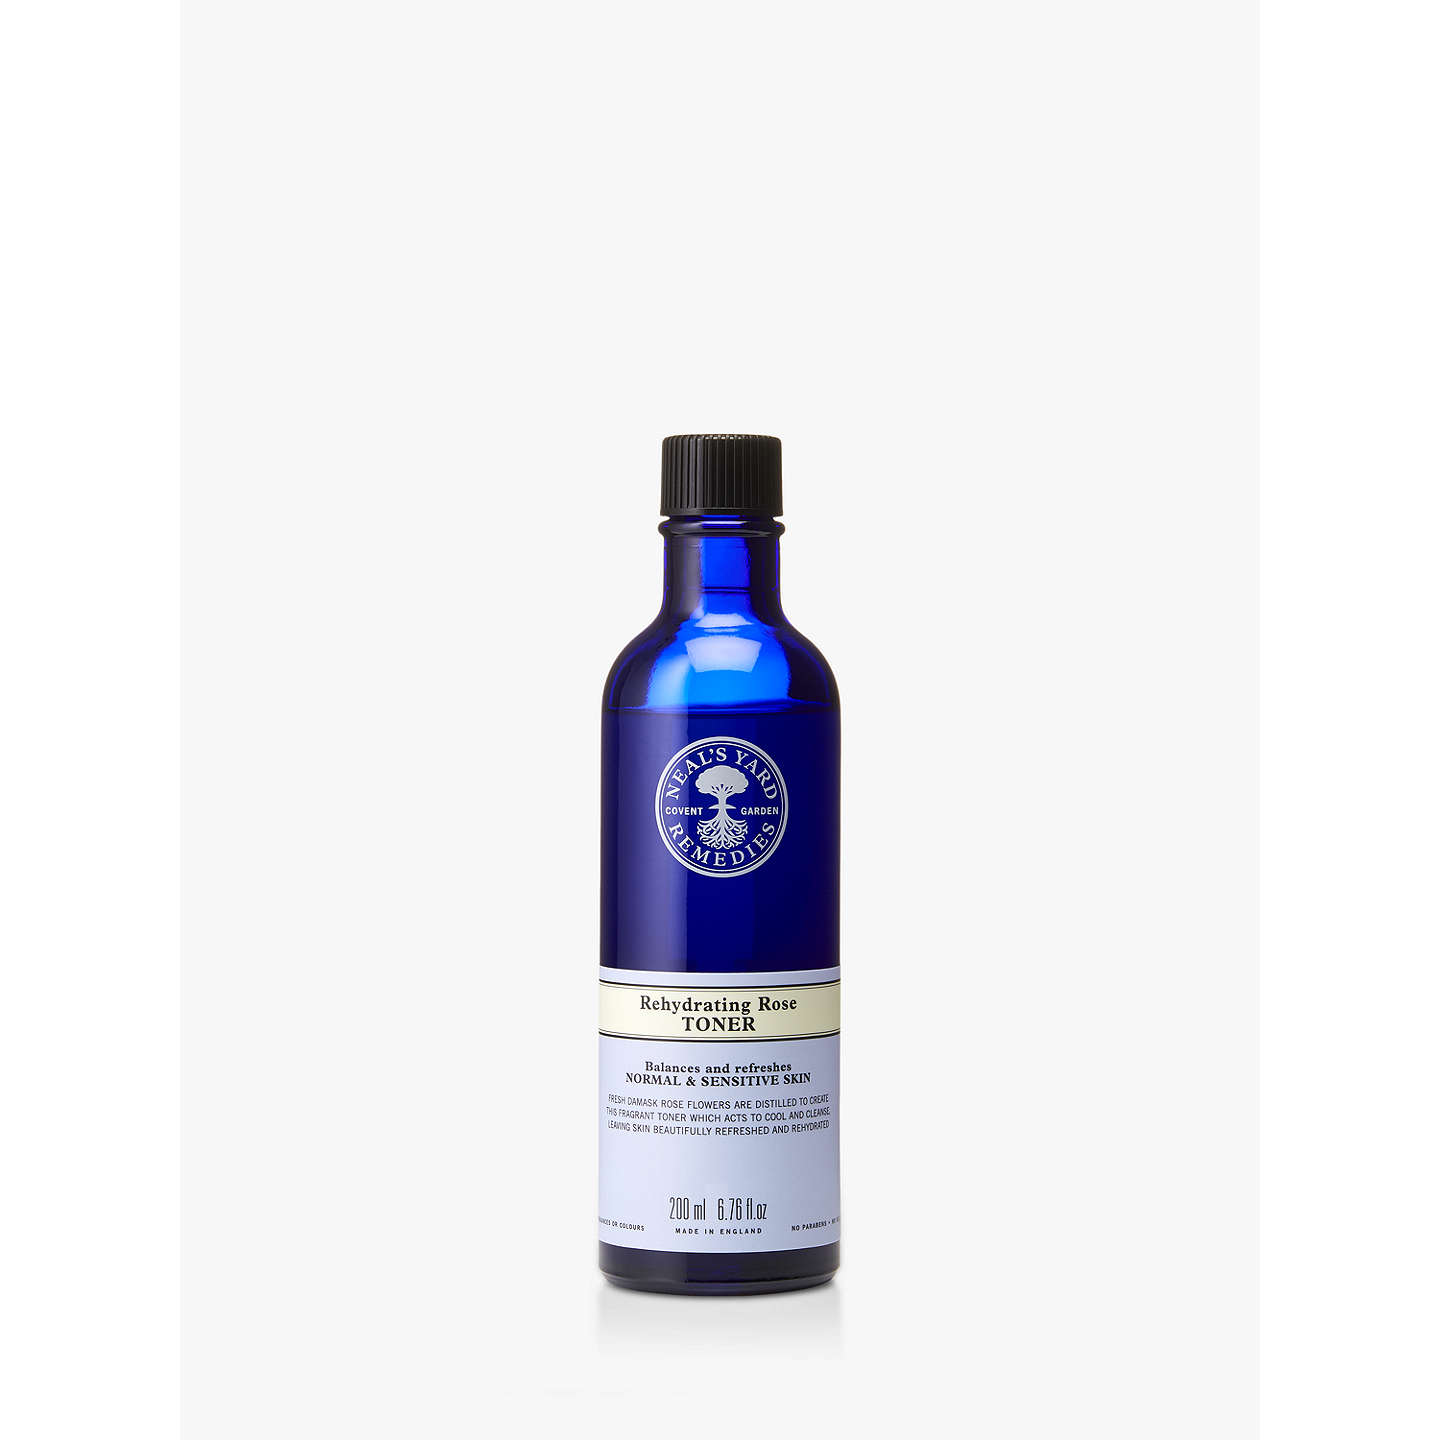 BuyNeal's Yard Remedies Rehydrating Rose Toner, 200ml Online at johnlewis.com